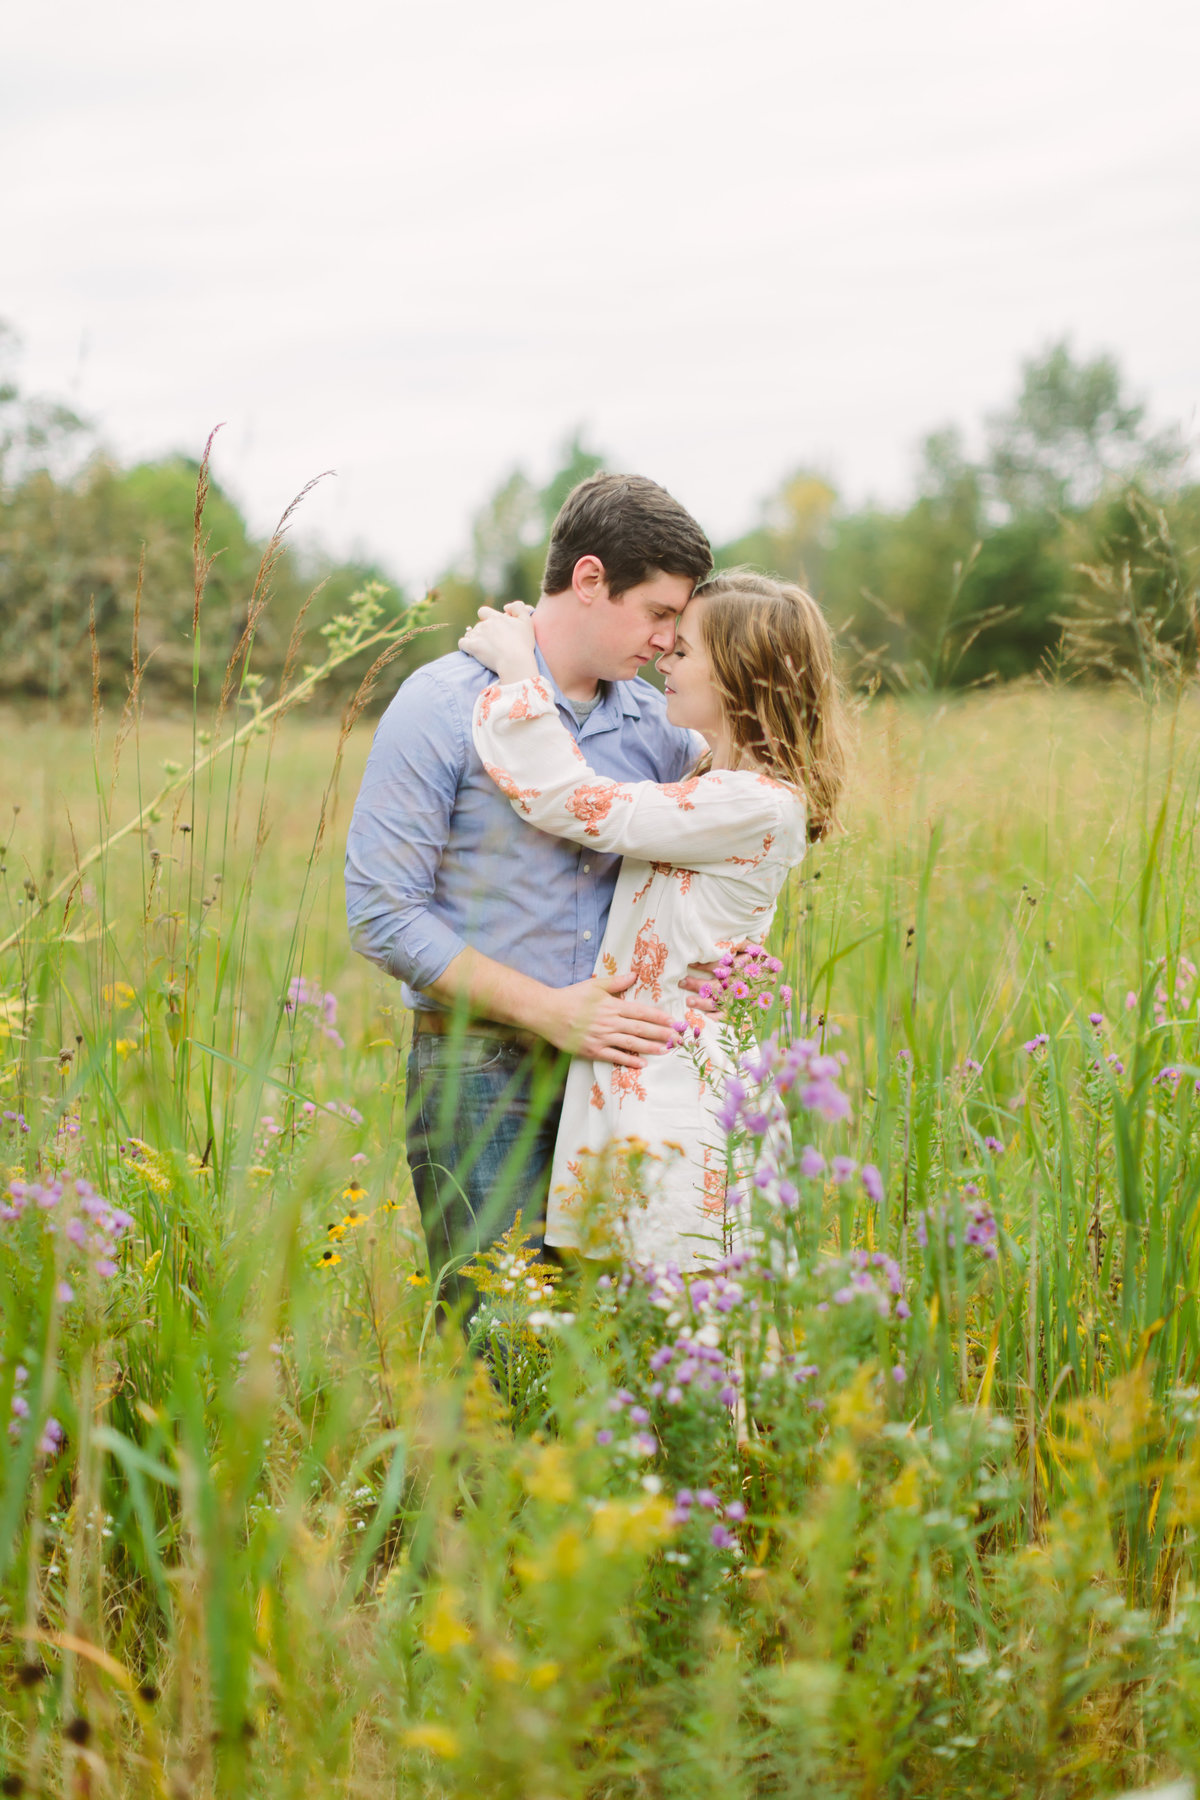 shaunae-teske-photography-engagements-39